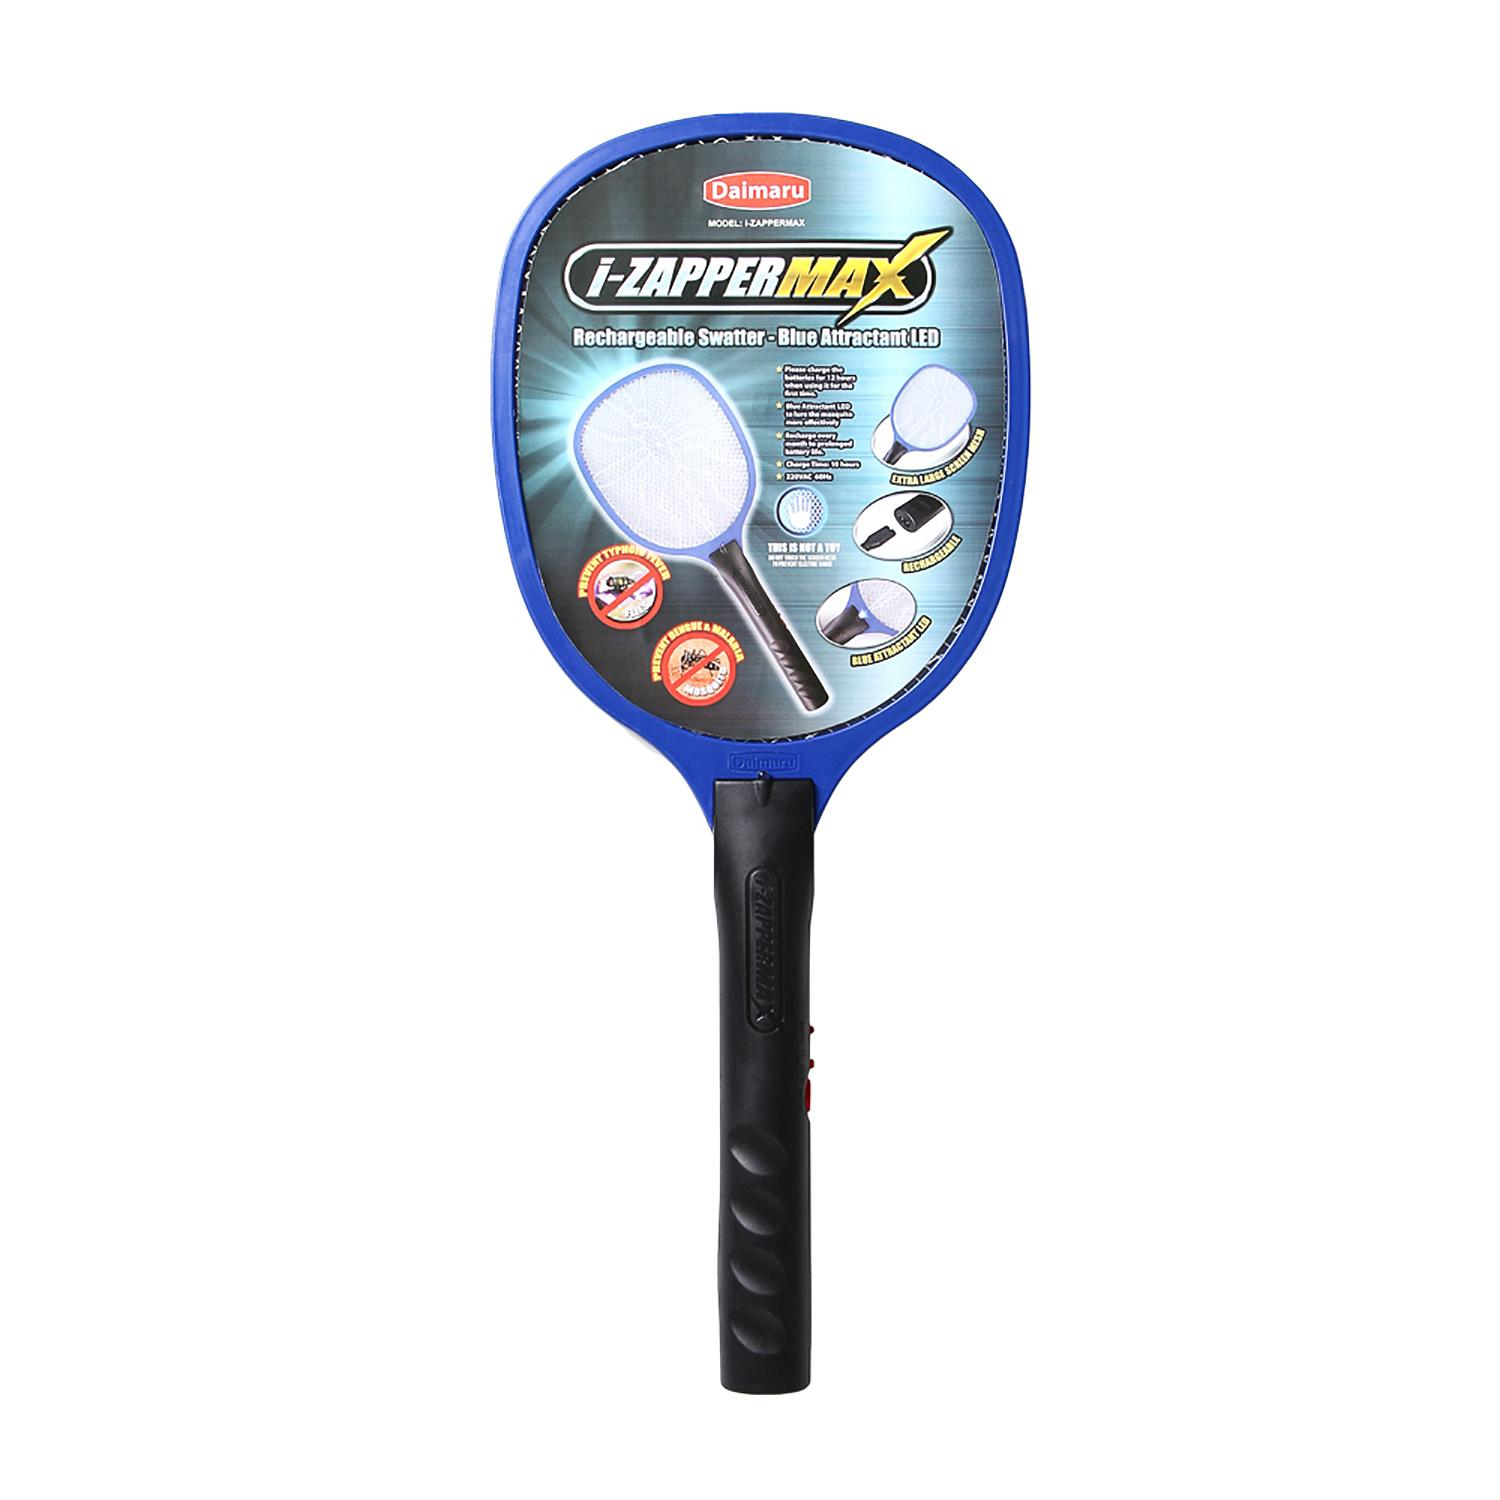 Daimaru iZappermax Rechargeable Insect Swatter image on snachetto.com